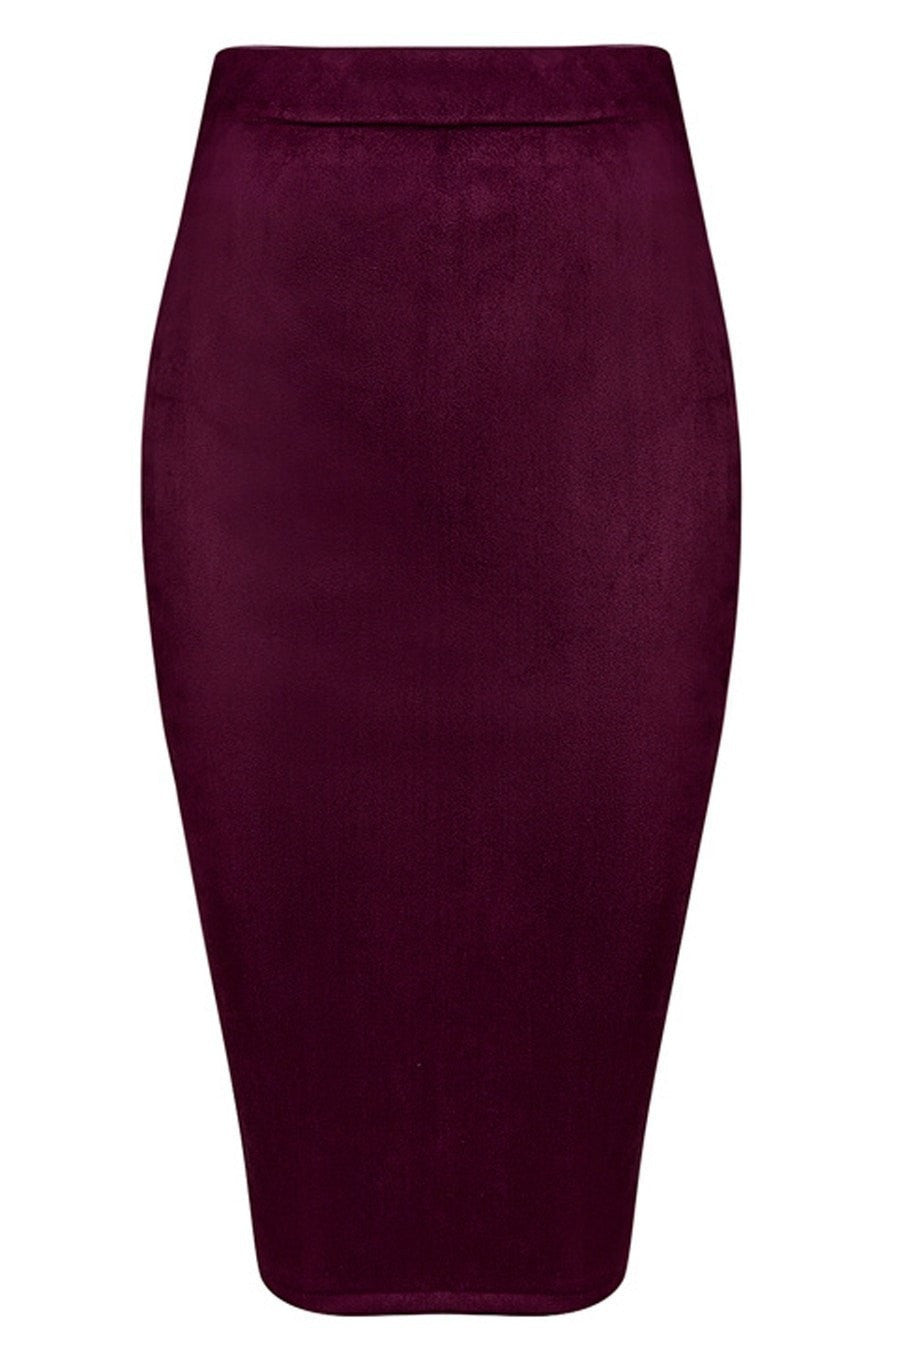 Honey Couture COLETTE Suede Look Burgundy Pencil Zip Skirt